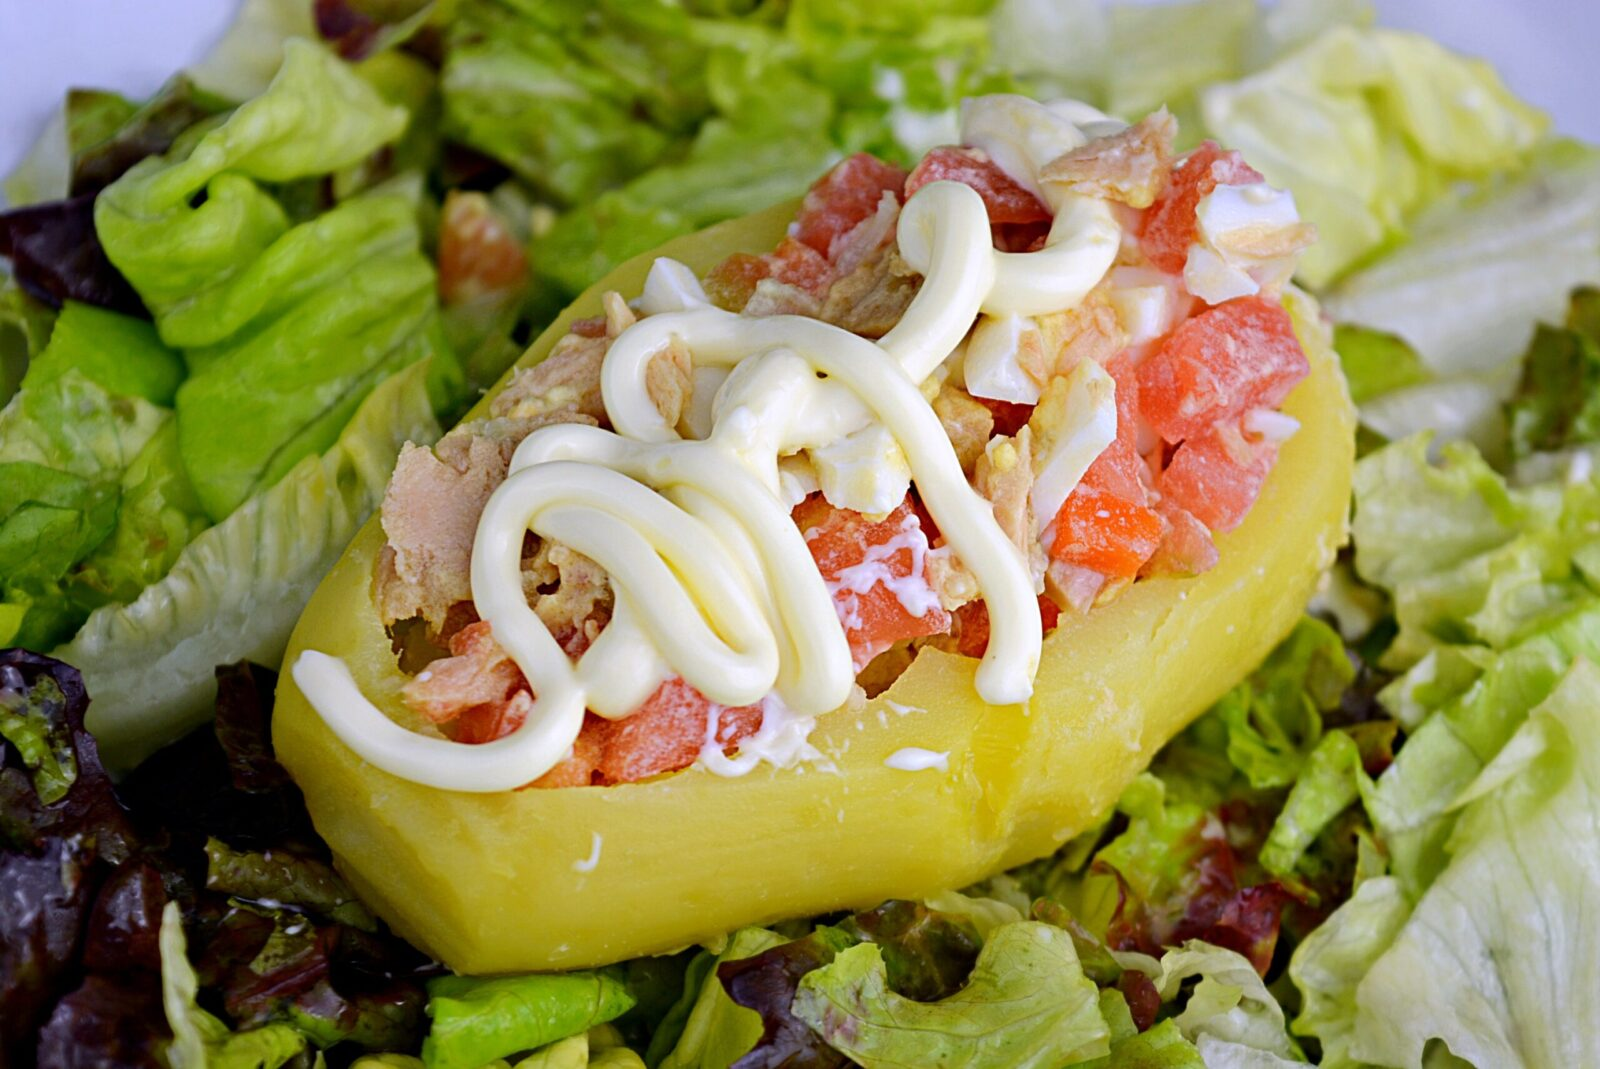 Potatoes stuffed with salad, a quick and easy recipe